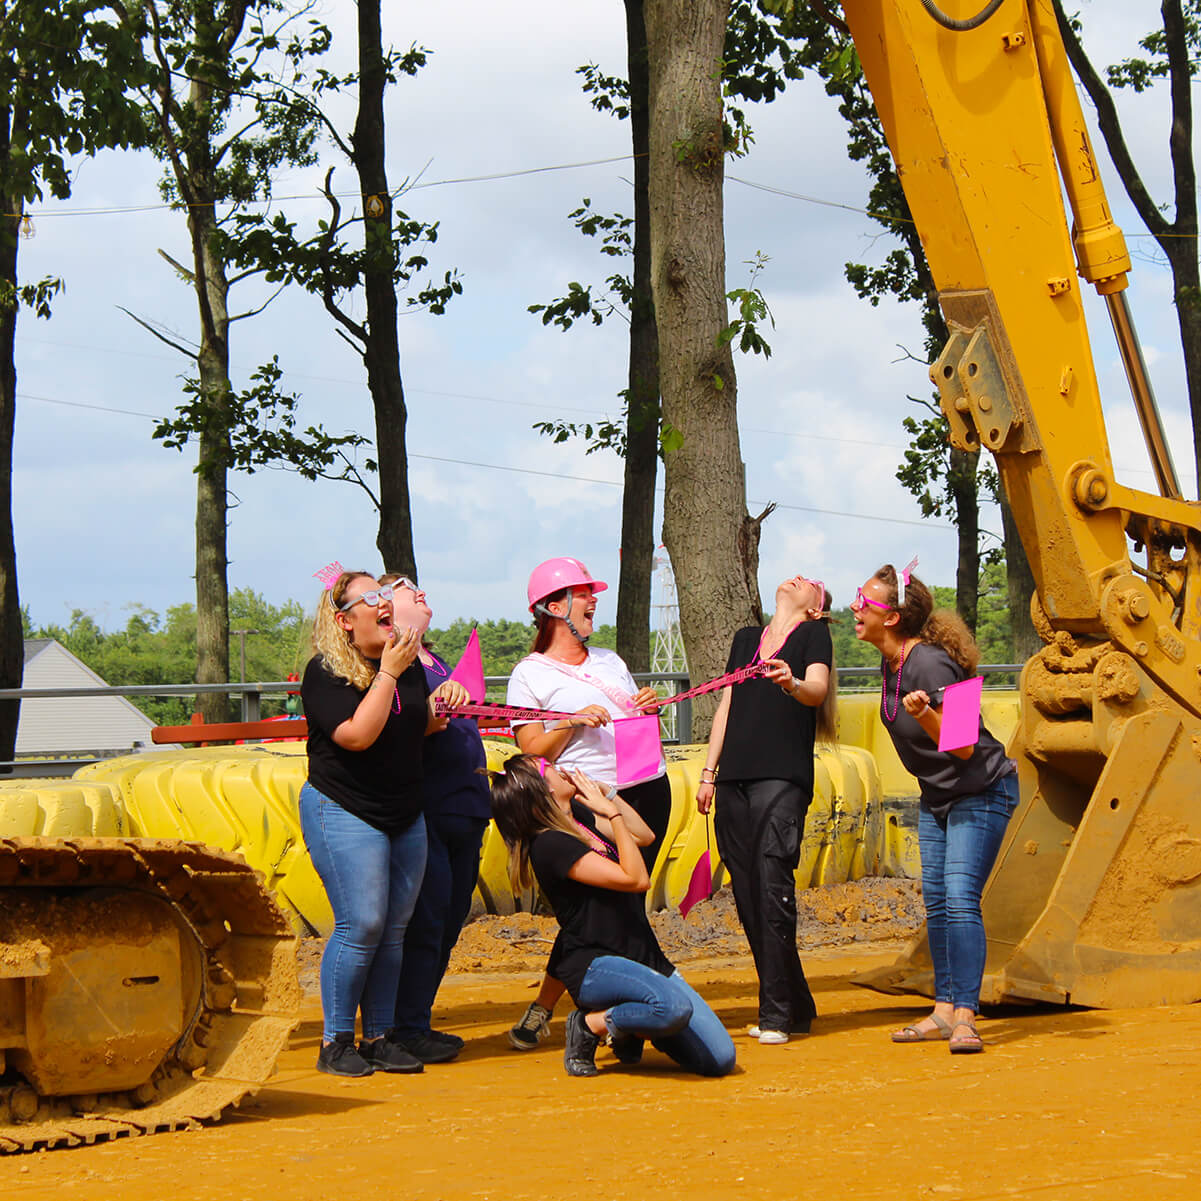 Bachelorette party having fun by excavator